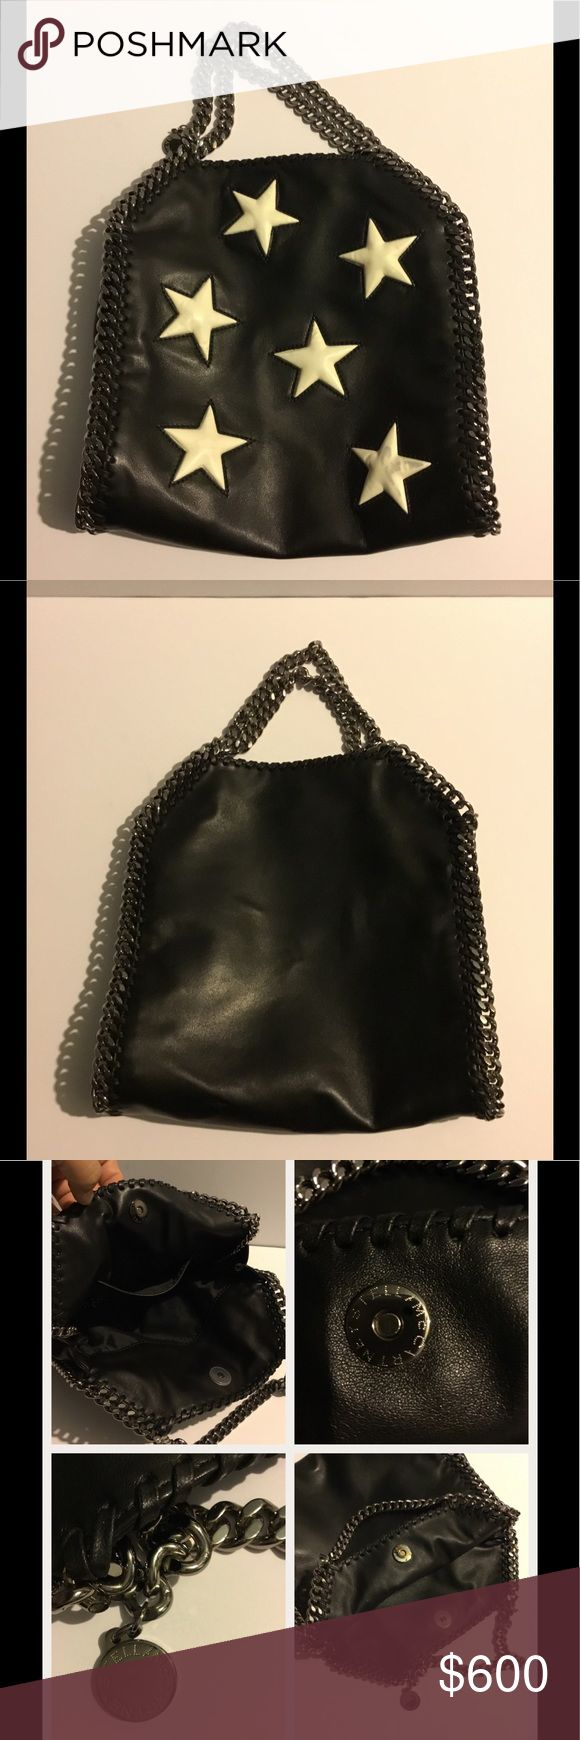 "Stella McCartney Black-white Falabella mini star shoulder bag. Faux-Leather polyvrethane-polyester w-star appliqués on Front. Signature chain-whip stitch trim. Top handles, approx 4.5"" drop, hanging logo disc charm. Chain shoulder strap, button closure, inside fabric lining, one open pocket. 10""H 10""W 4"" D Made in Italy PLEASE NOTE AS YOU MAY SEE ON LAST PHOTO IT HAS ON THE STARS A BIT STAIN. I DINT KNOW THEY THEY DID. No dust bag or box. Over all in good condition. Online Sold Out. PRICE…"